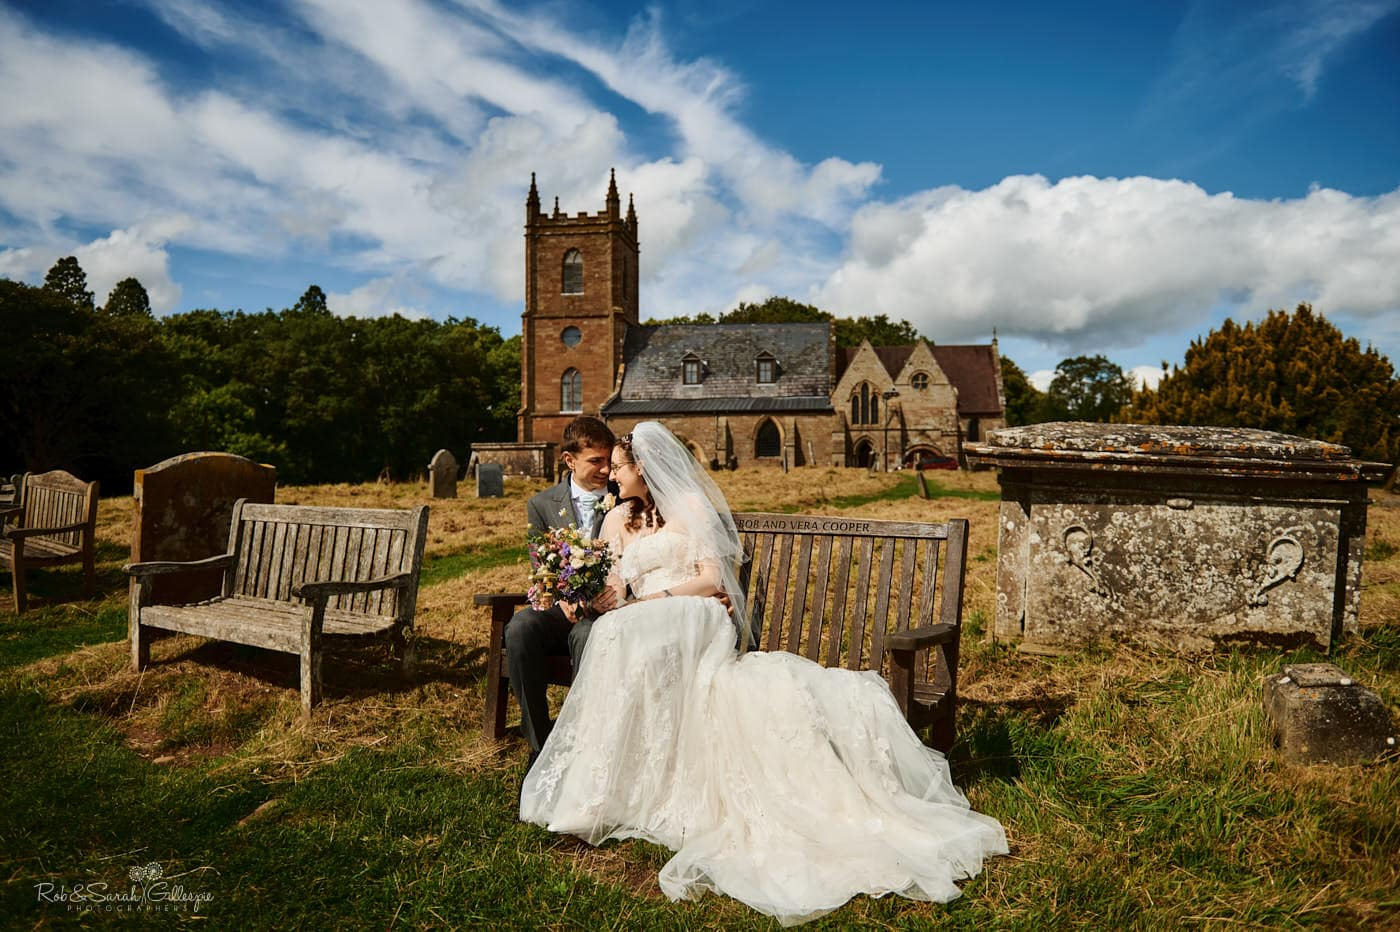 Newly married couple on bench at Hanbury church with beautiful weather